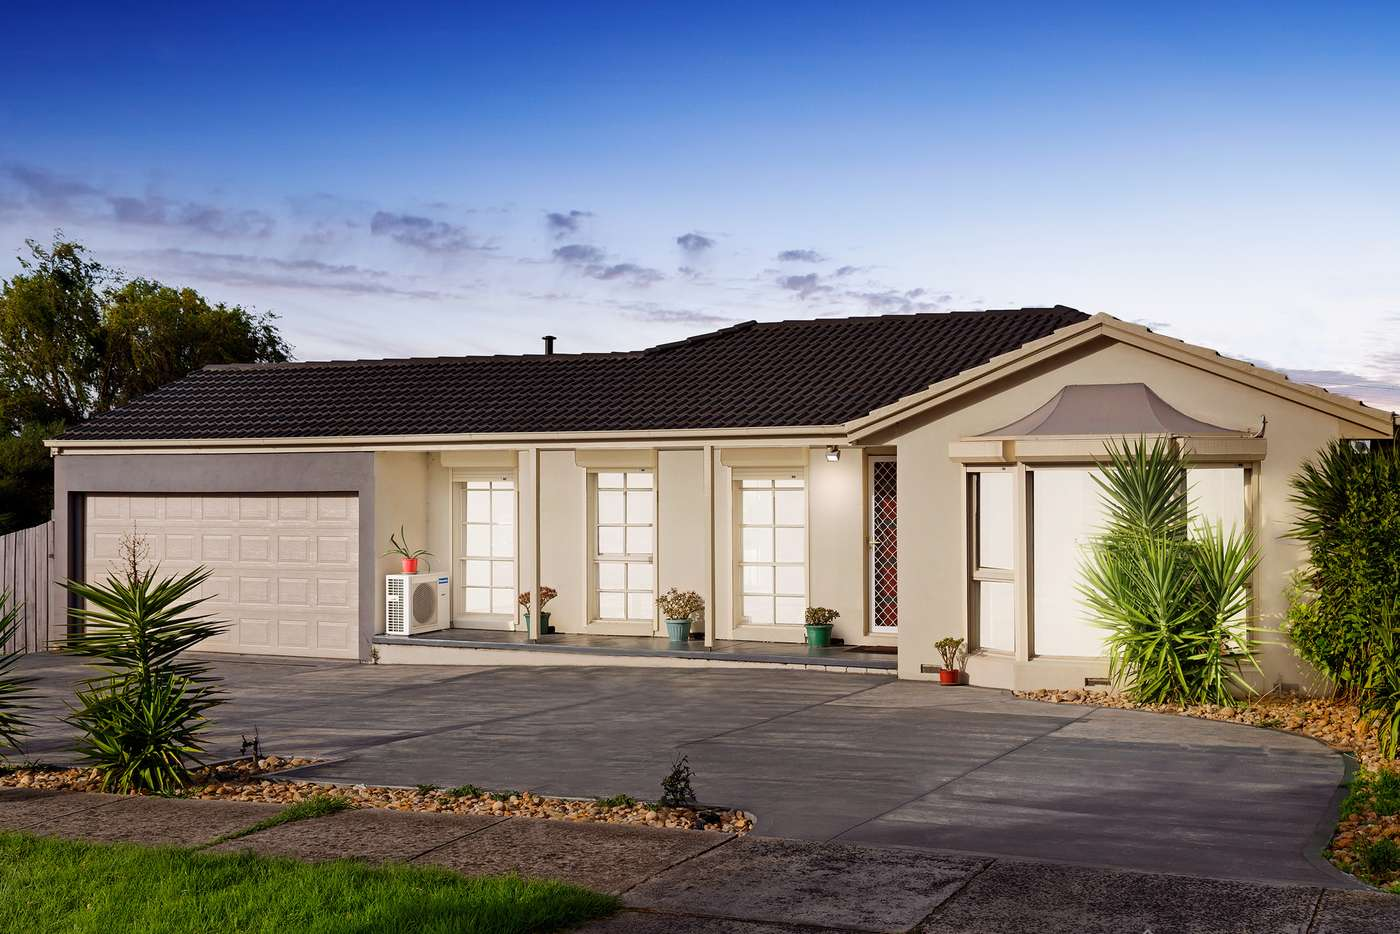 Main view of Homely house listing, 2 Weeden Crescent, Hallam VIC 3803